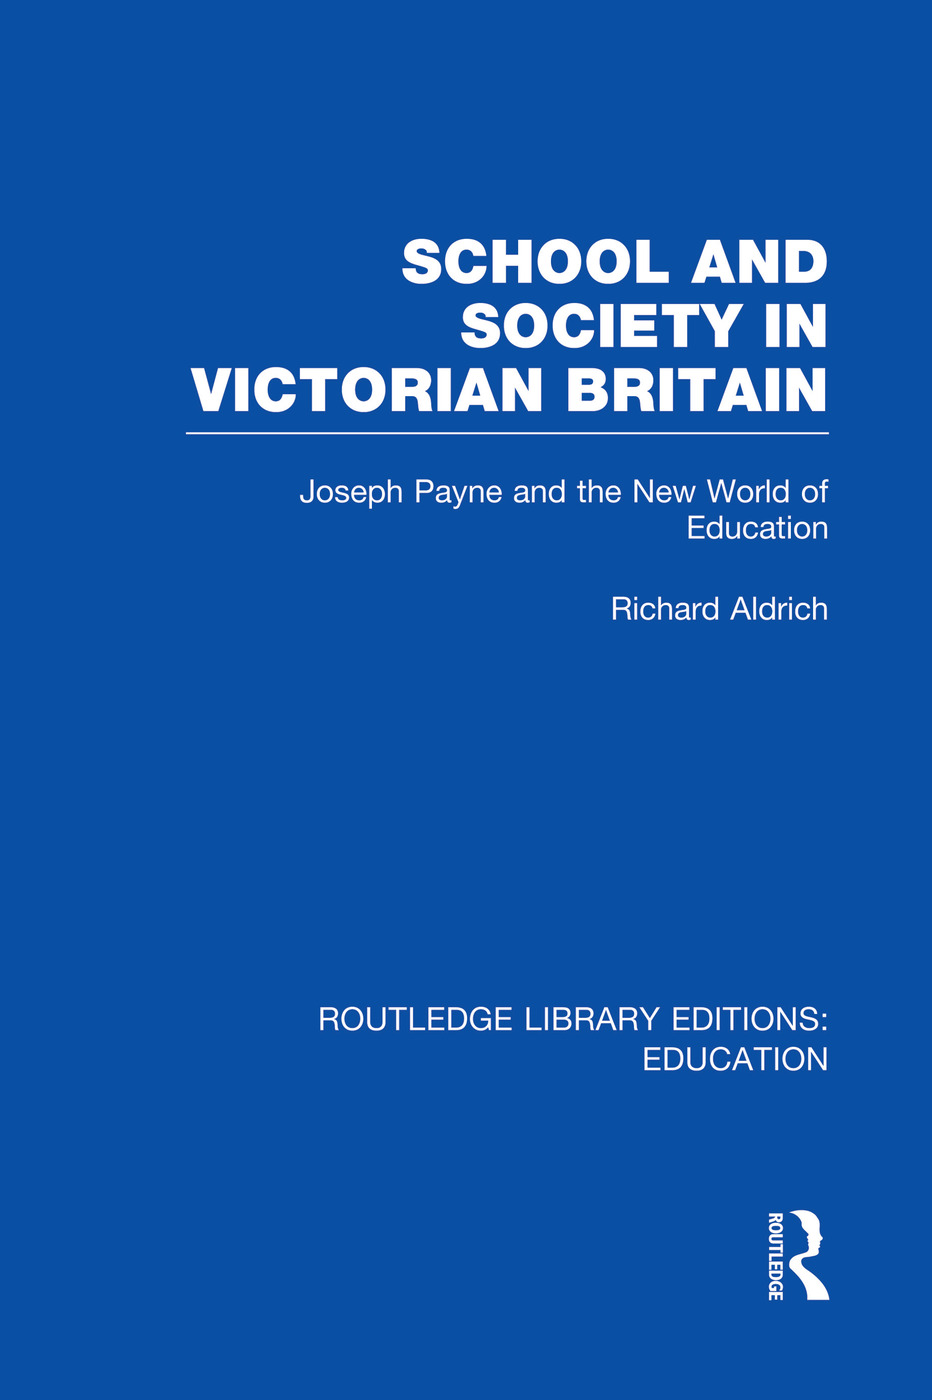 School and Society in Victorian Britain